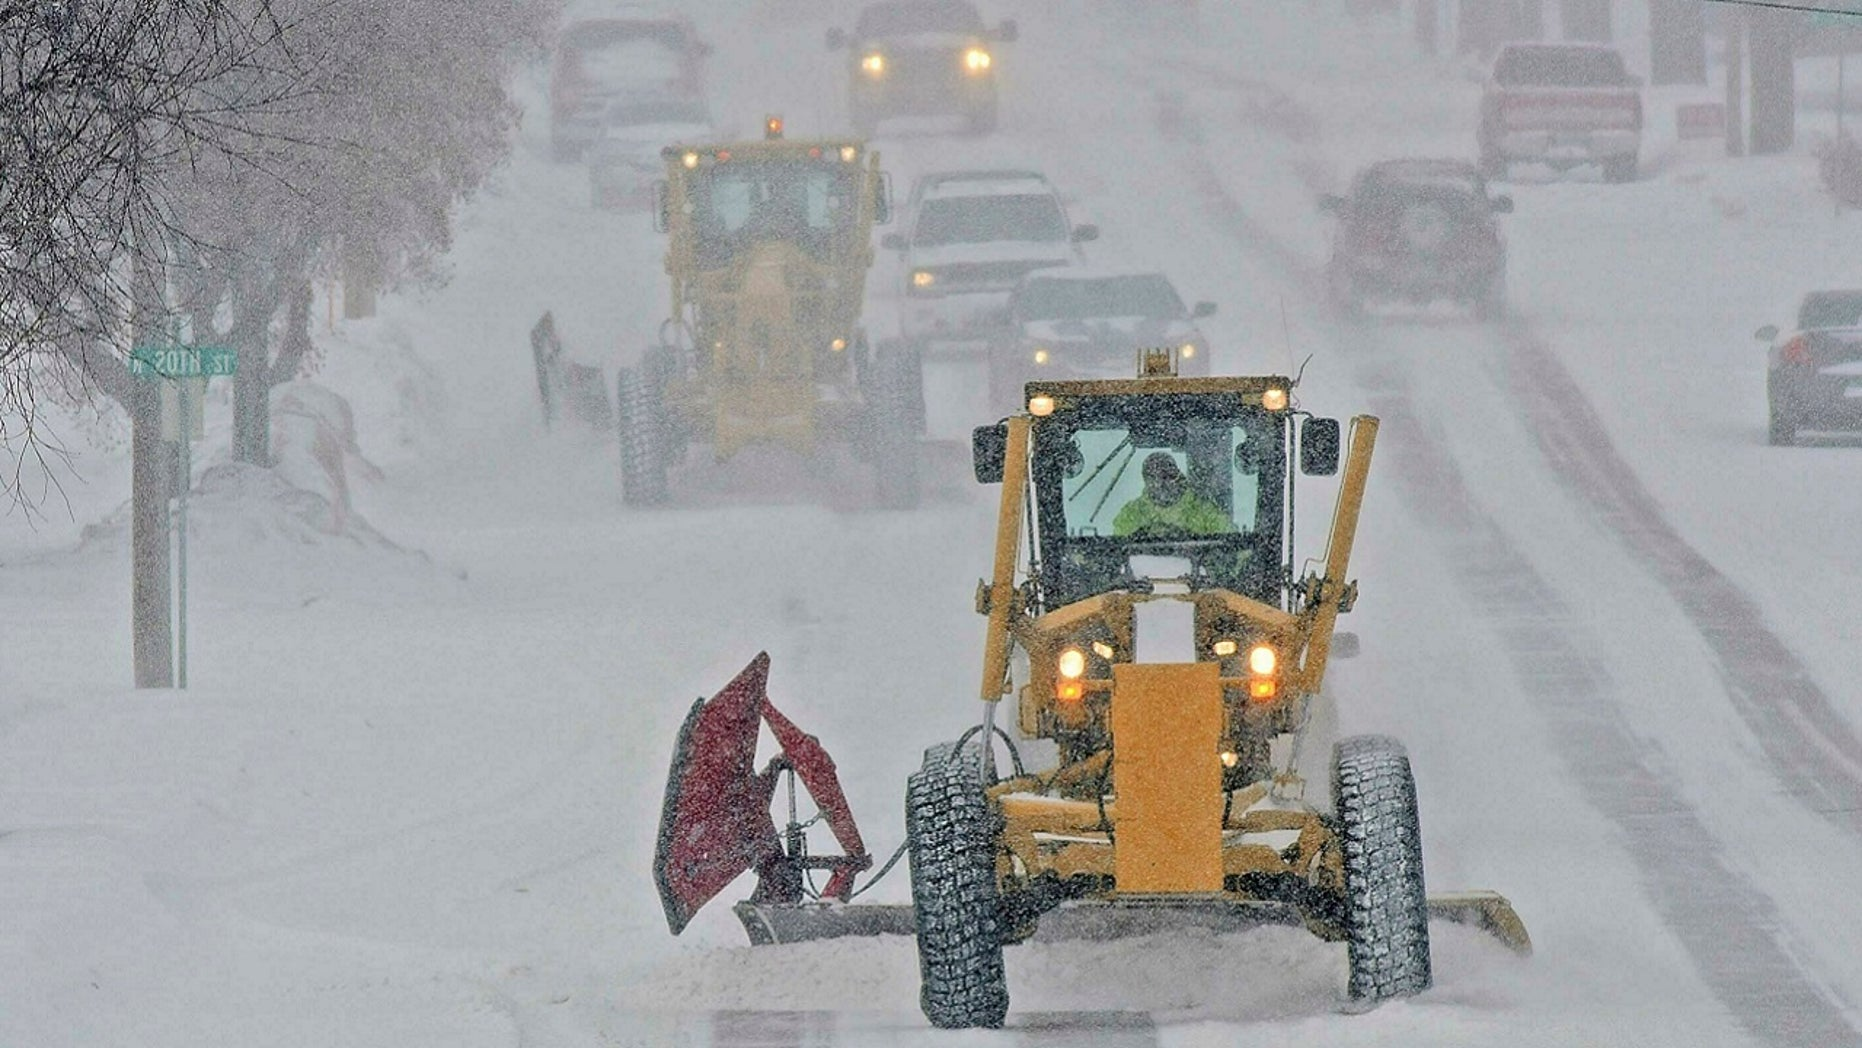 Motor graders plow Rosser Avenue as snow falls, Friday, Jan. 18, 2019, in Bismarck, N.D.